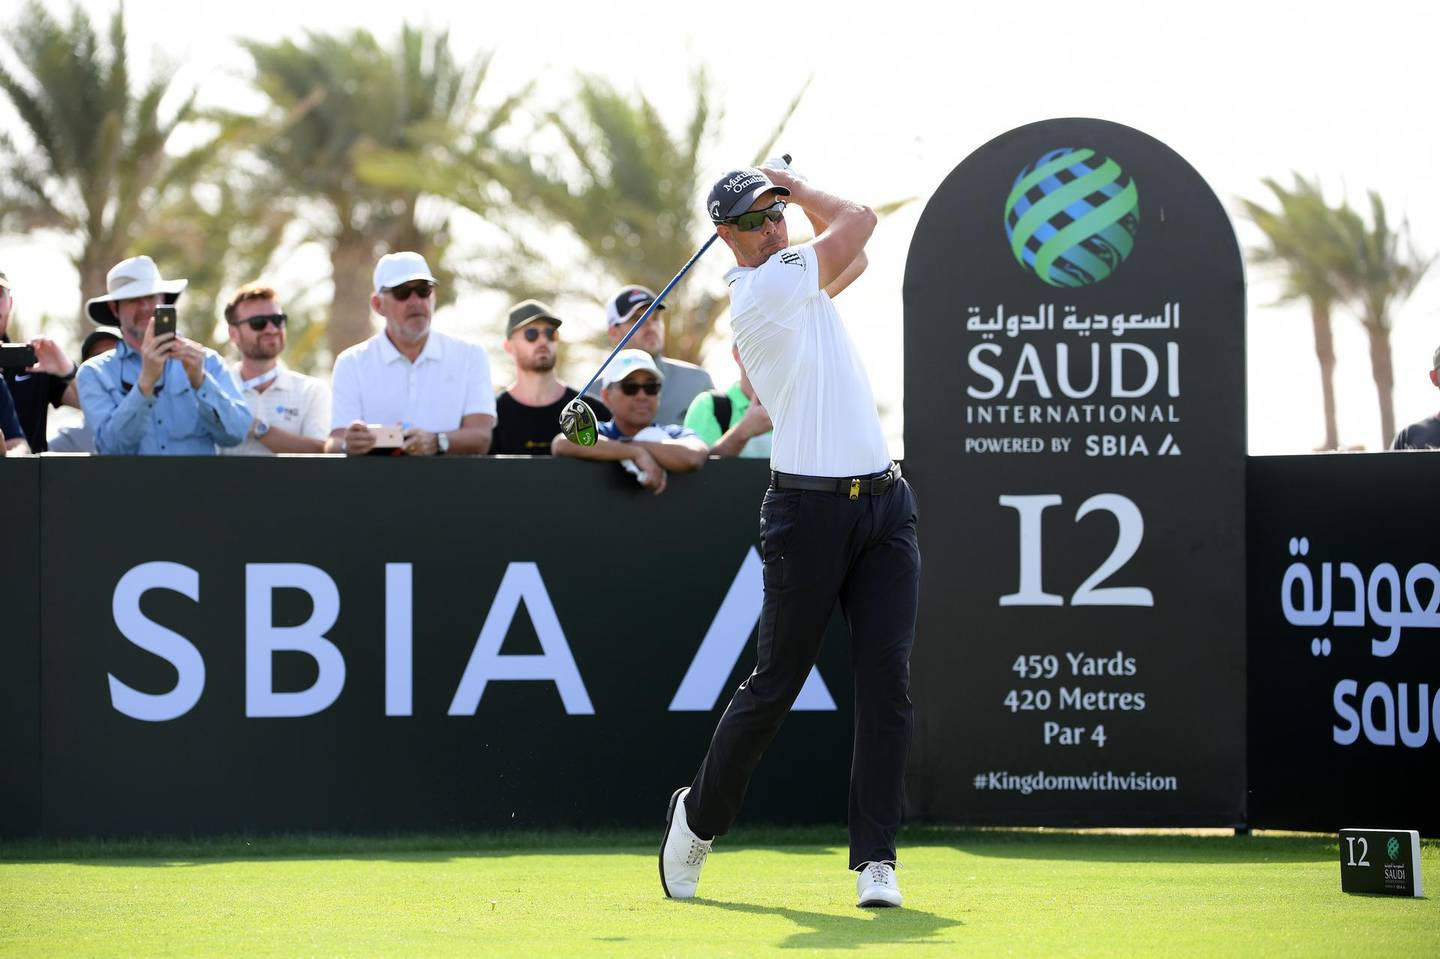 KING ABDULLAH ECONOMIC CITY, SAUDI ARABIA - FEBRUARY 01:  Henrik Stenson of Sweden tees off on the 12th hole during Day two of the Saudi International at the Royal Greens Golf & Country Club on February 01, 2019 in King Abdullah Economic City, Saudi Arabia. (Photo by Ross Kinnaird/Getty Images)